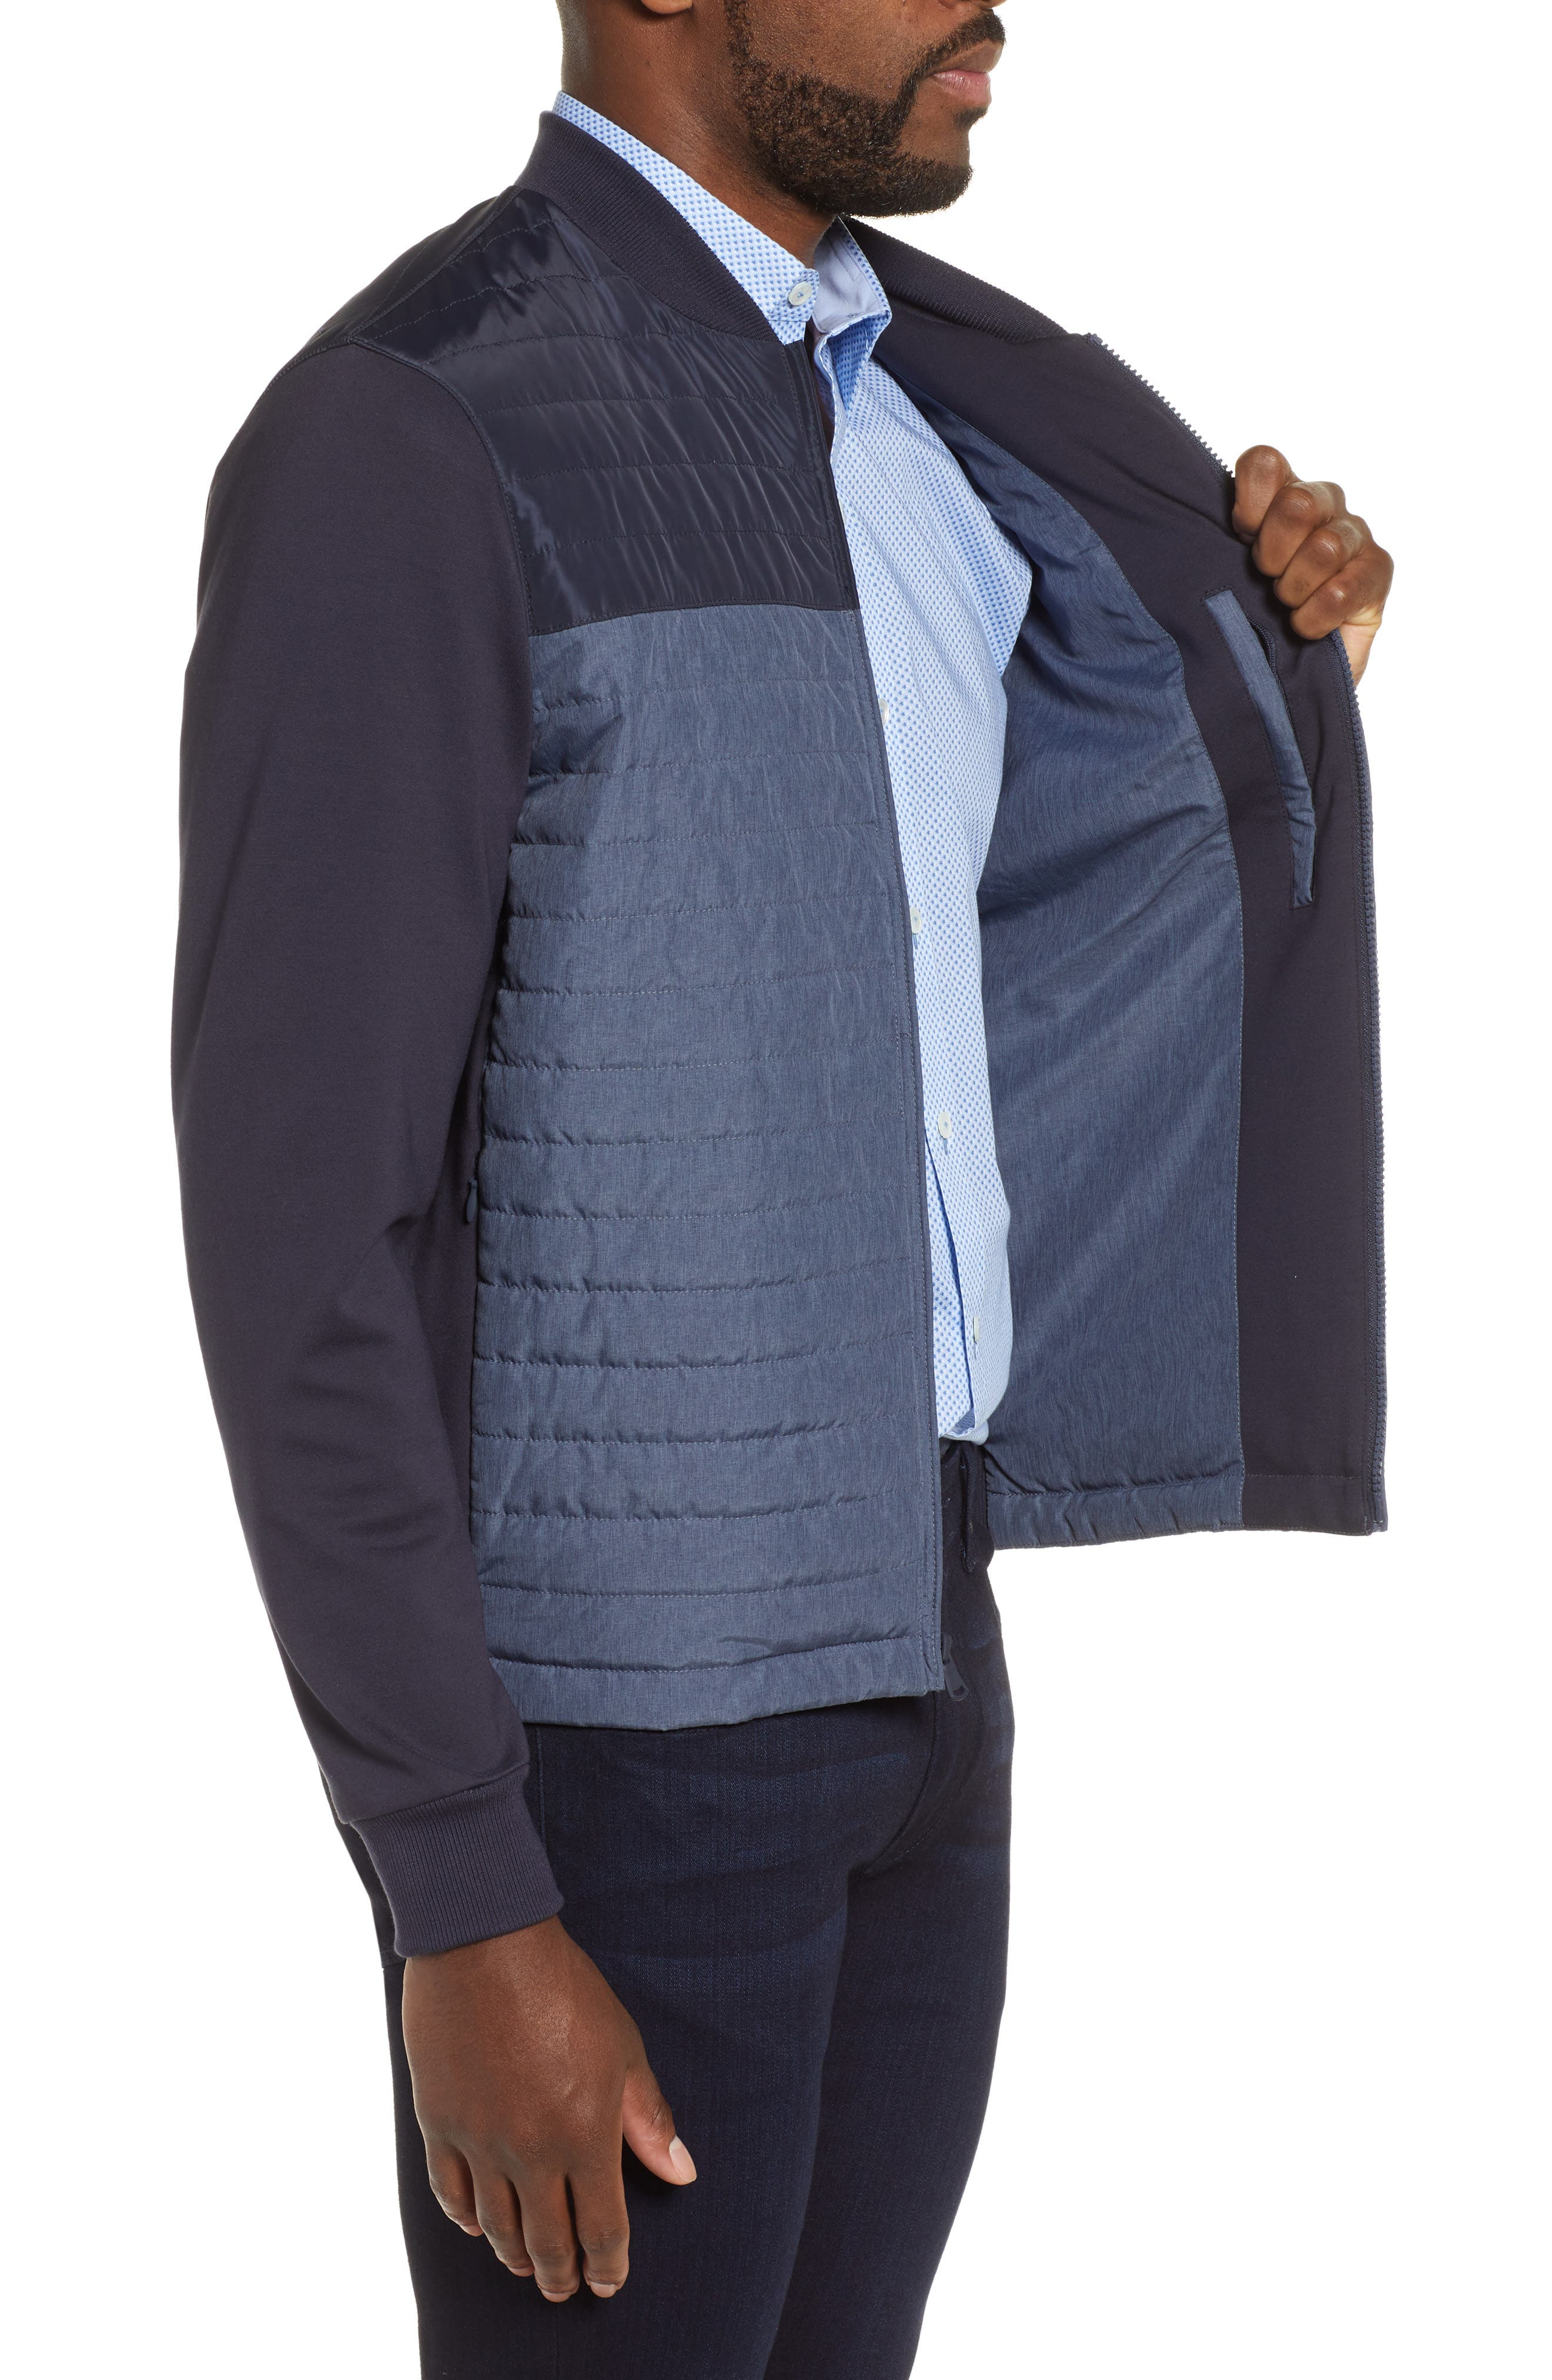 ZACHARY PRELL, Montauk Quilted Bomber Jacket, Alternate thumbnail 4, color, NAVY